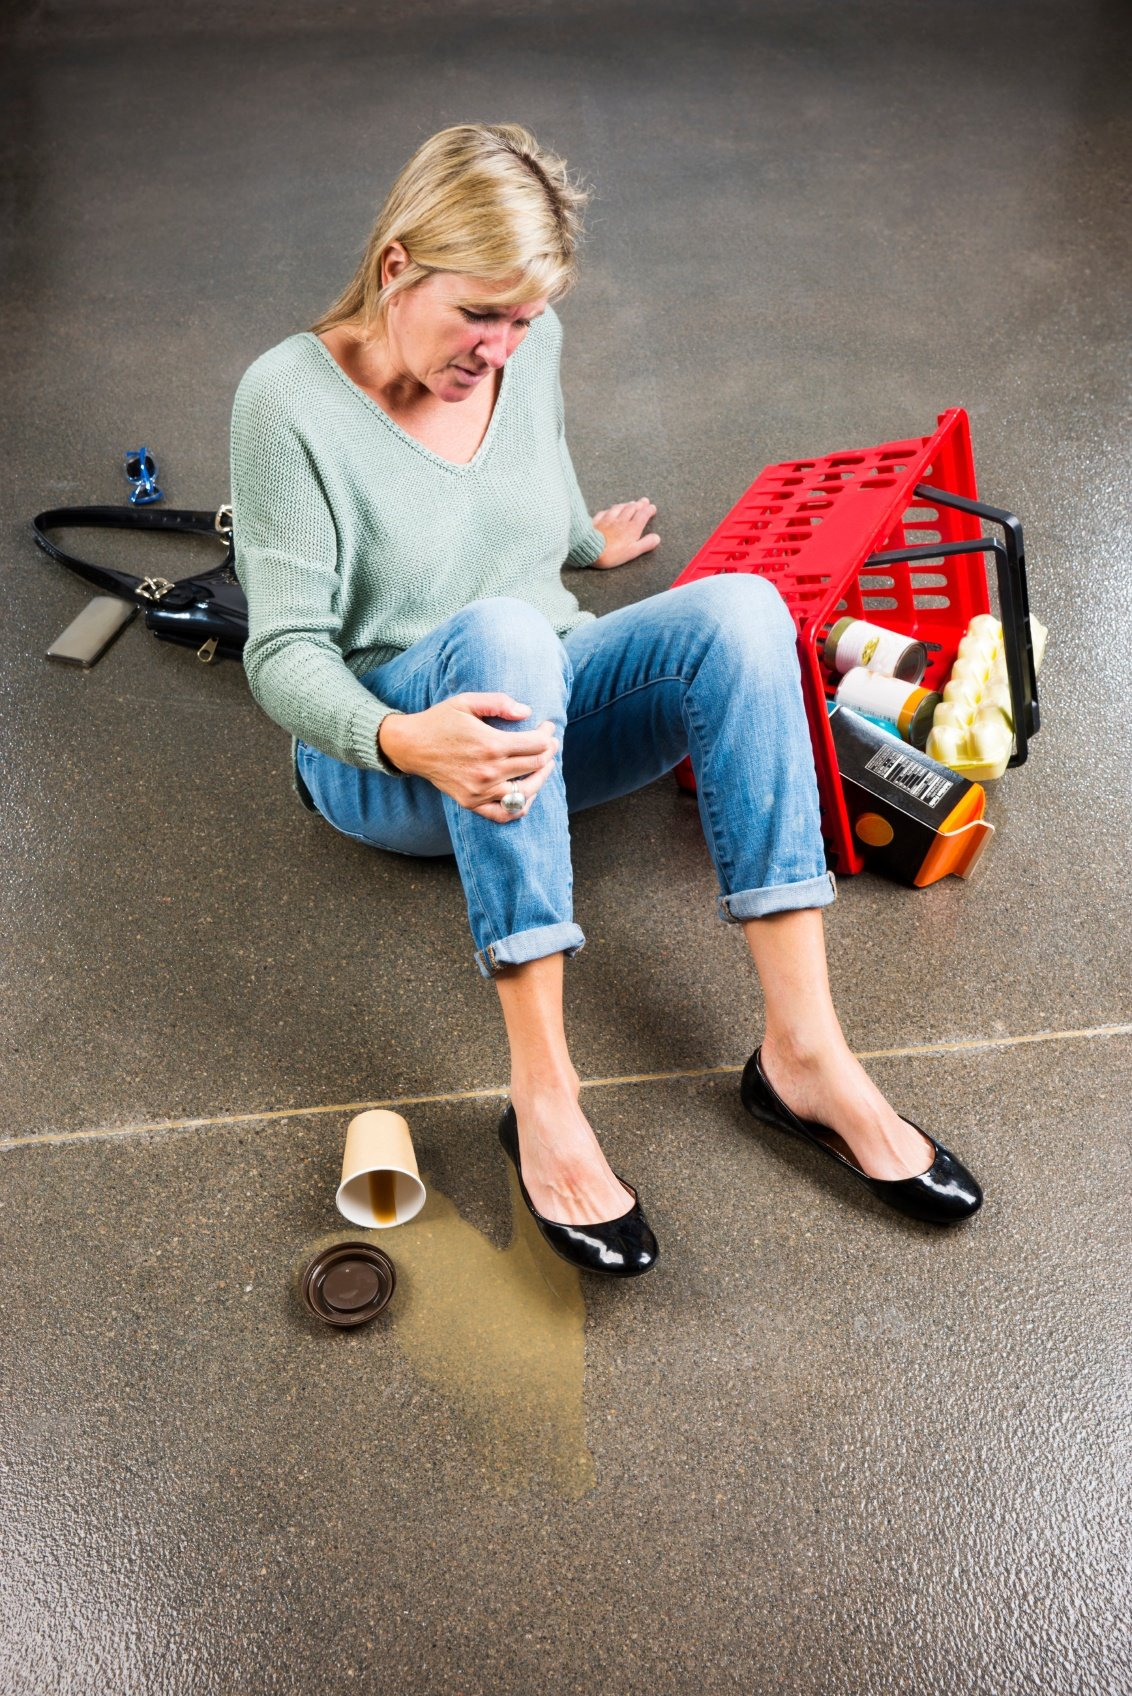 Georgia Slip and Fall Law Firm